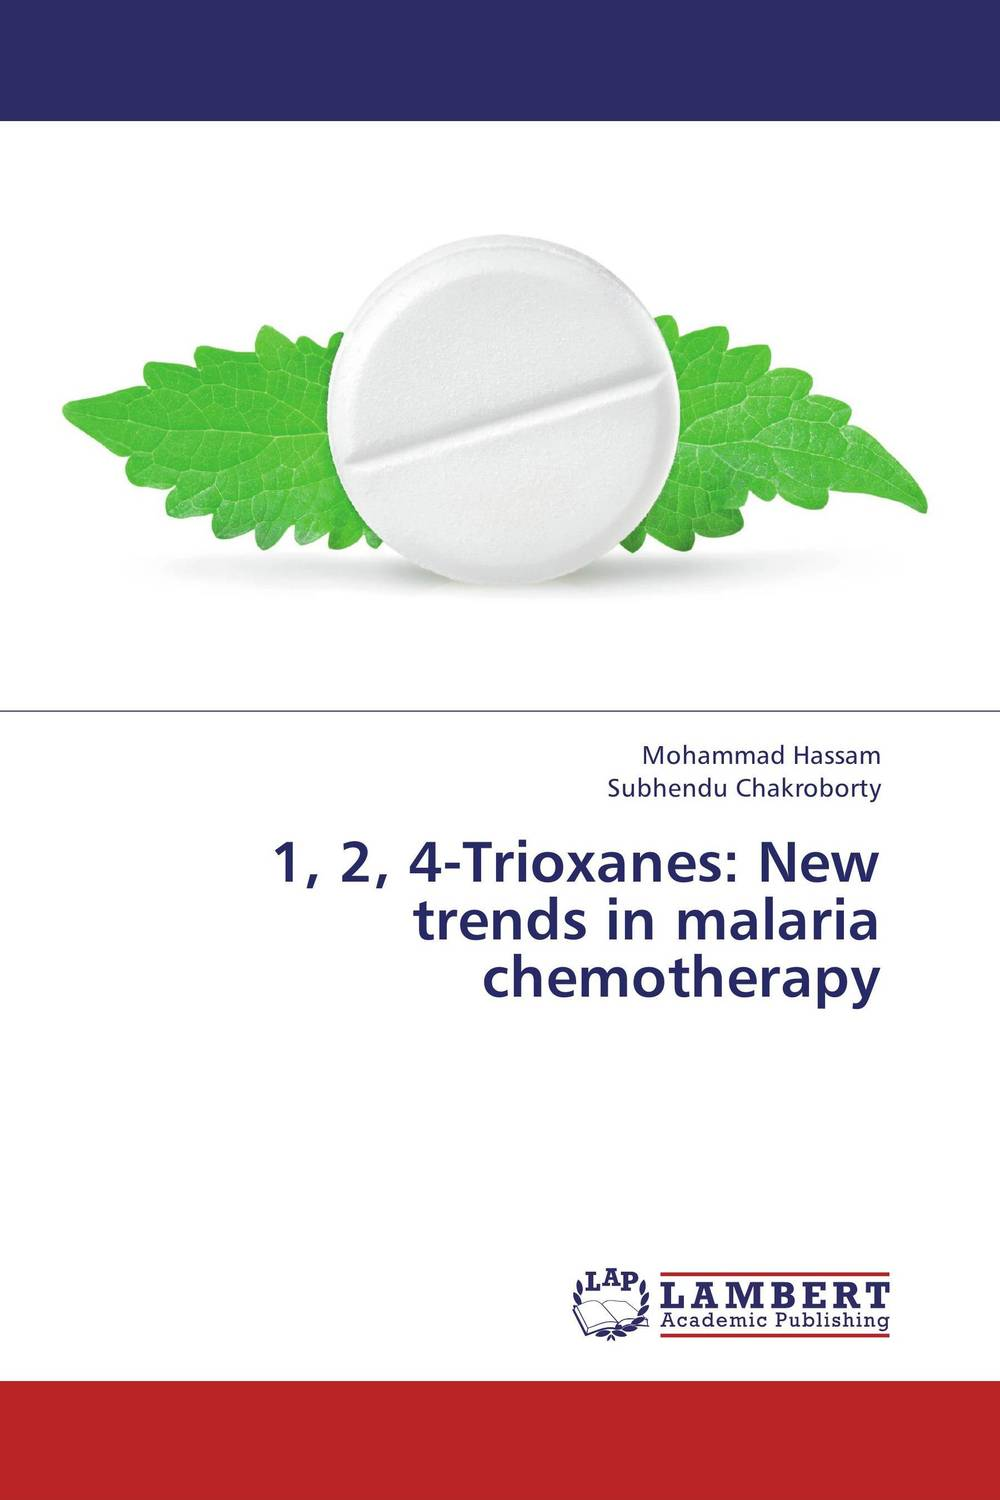 1, 2, 4-Trioxanes: New trends in malaria chemotherapy drug discovery and design